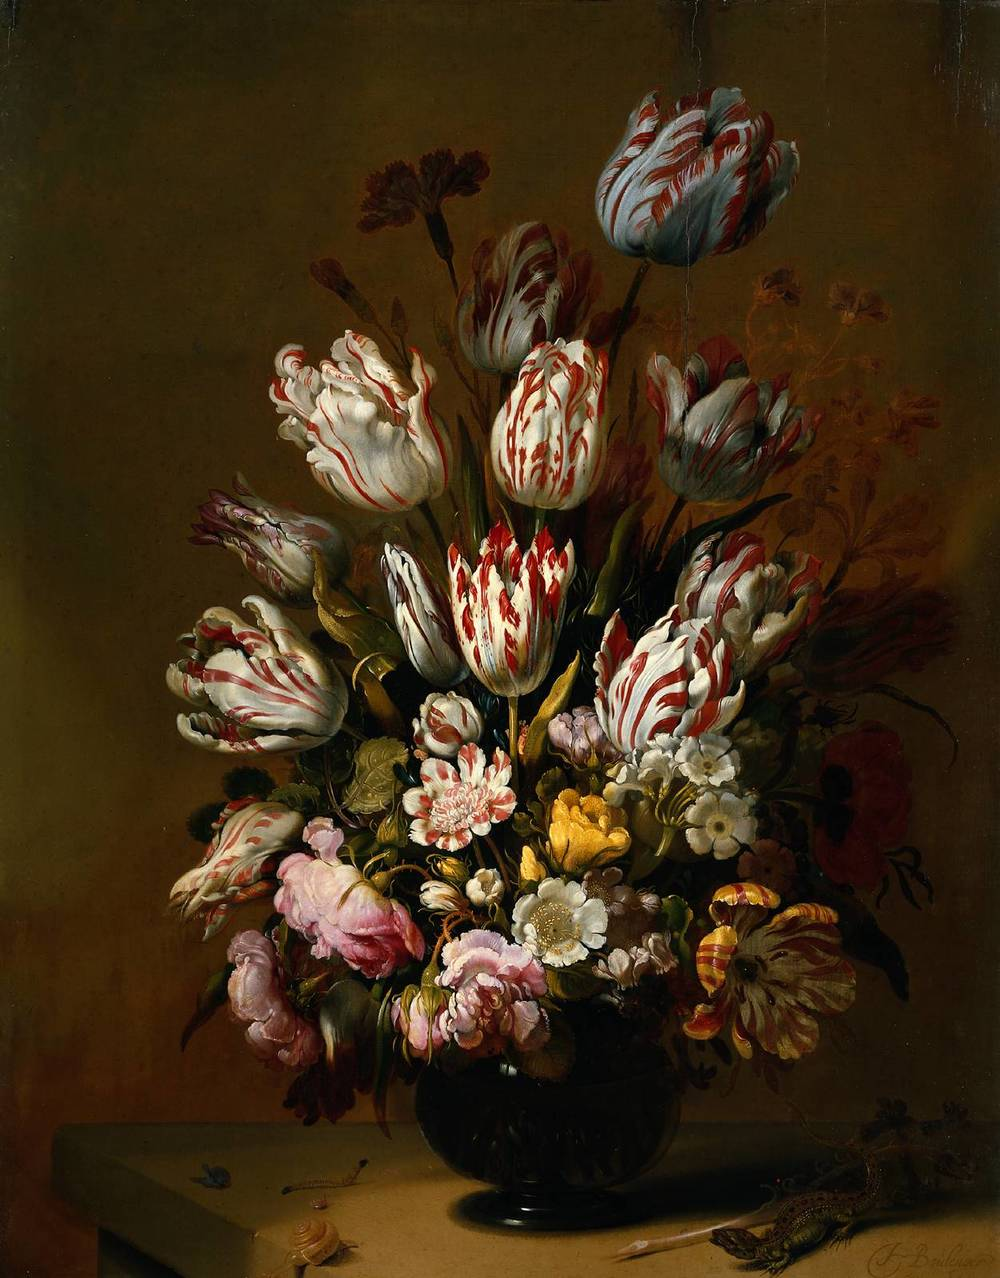 Still Life with Flowers  by  Hans Bollongier  (1623–1672) painted in 1639 showcasing the prized  Semper Augustus  tulip.